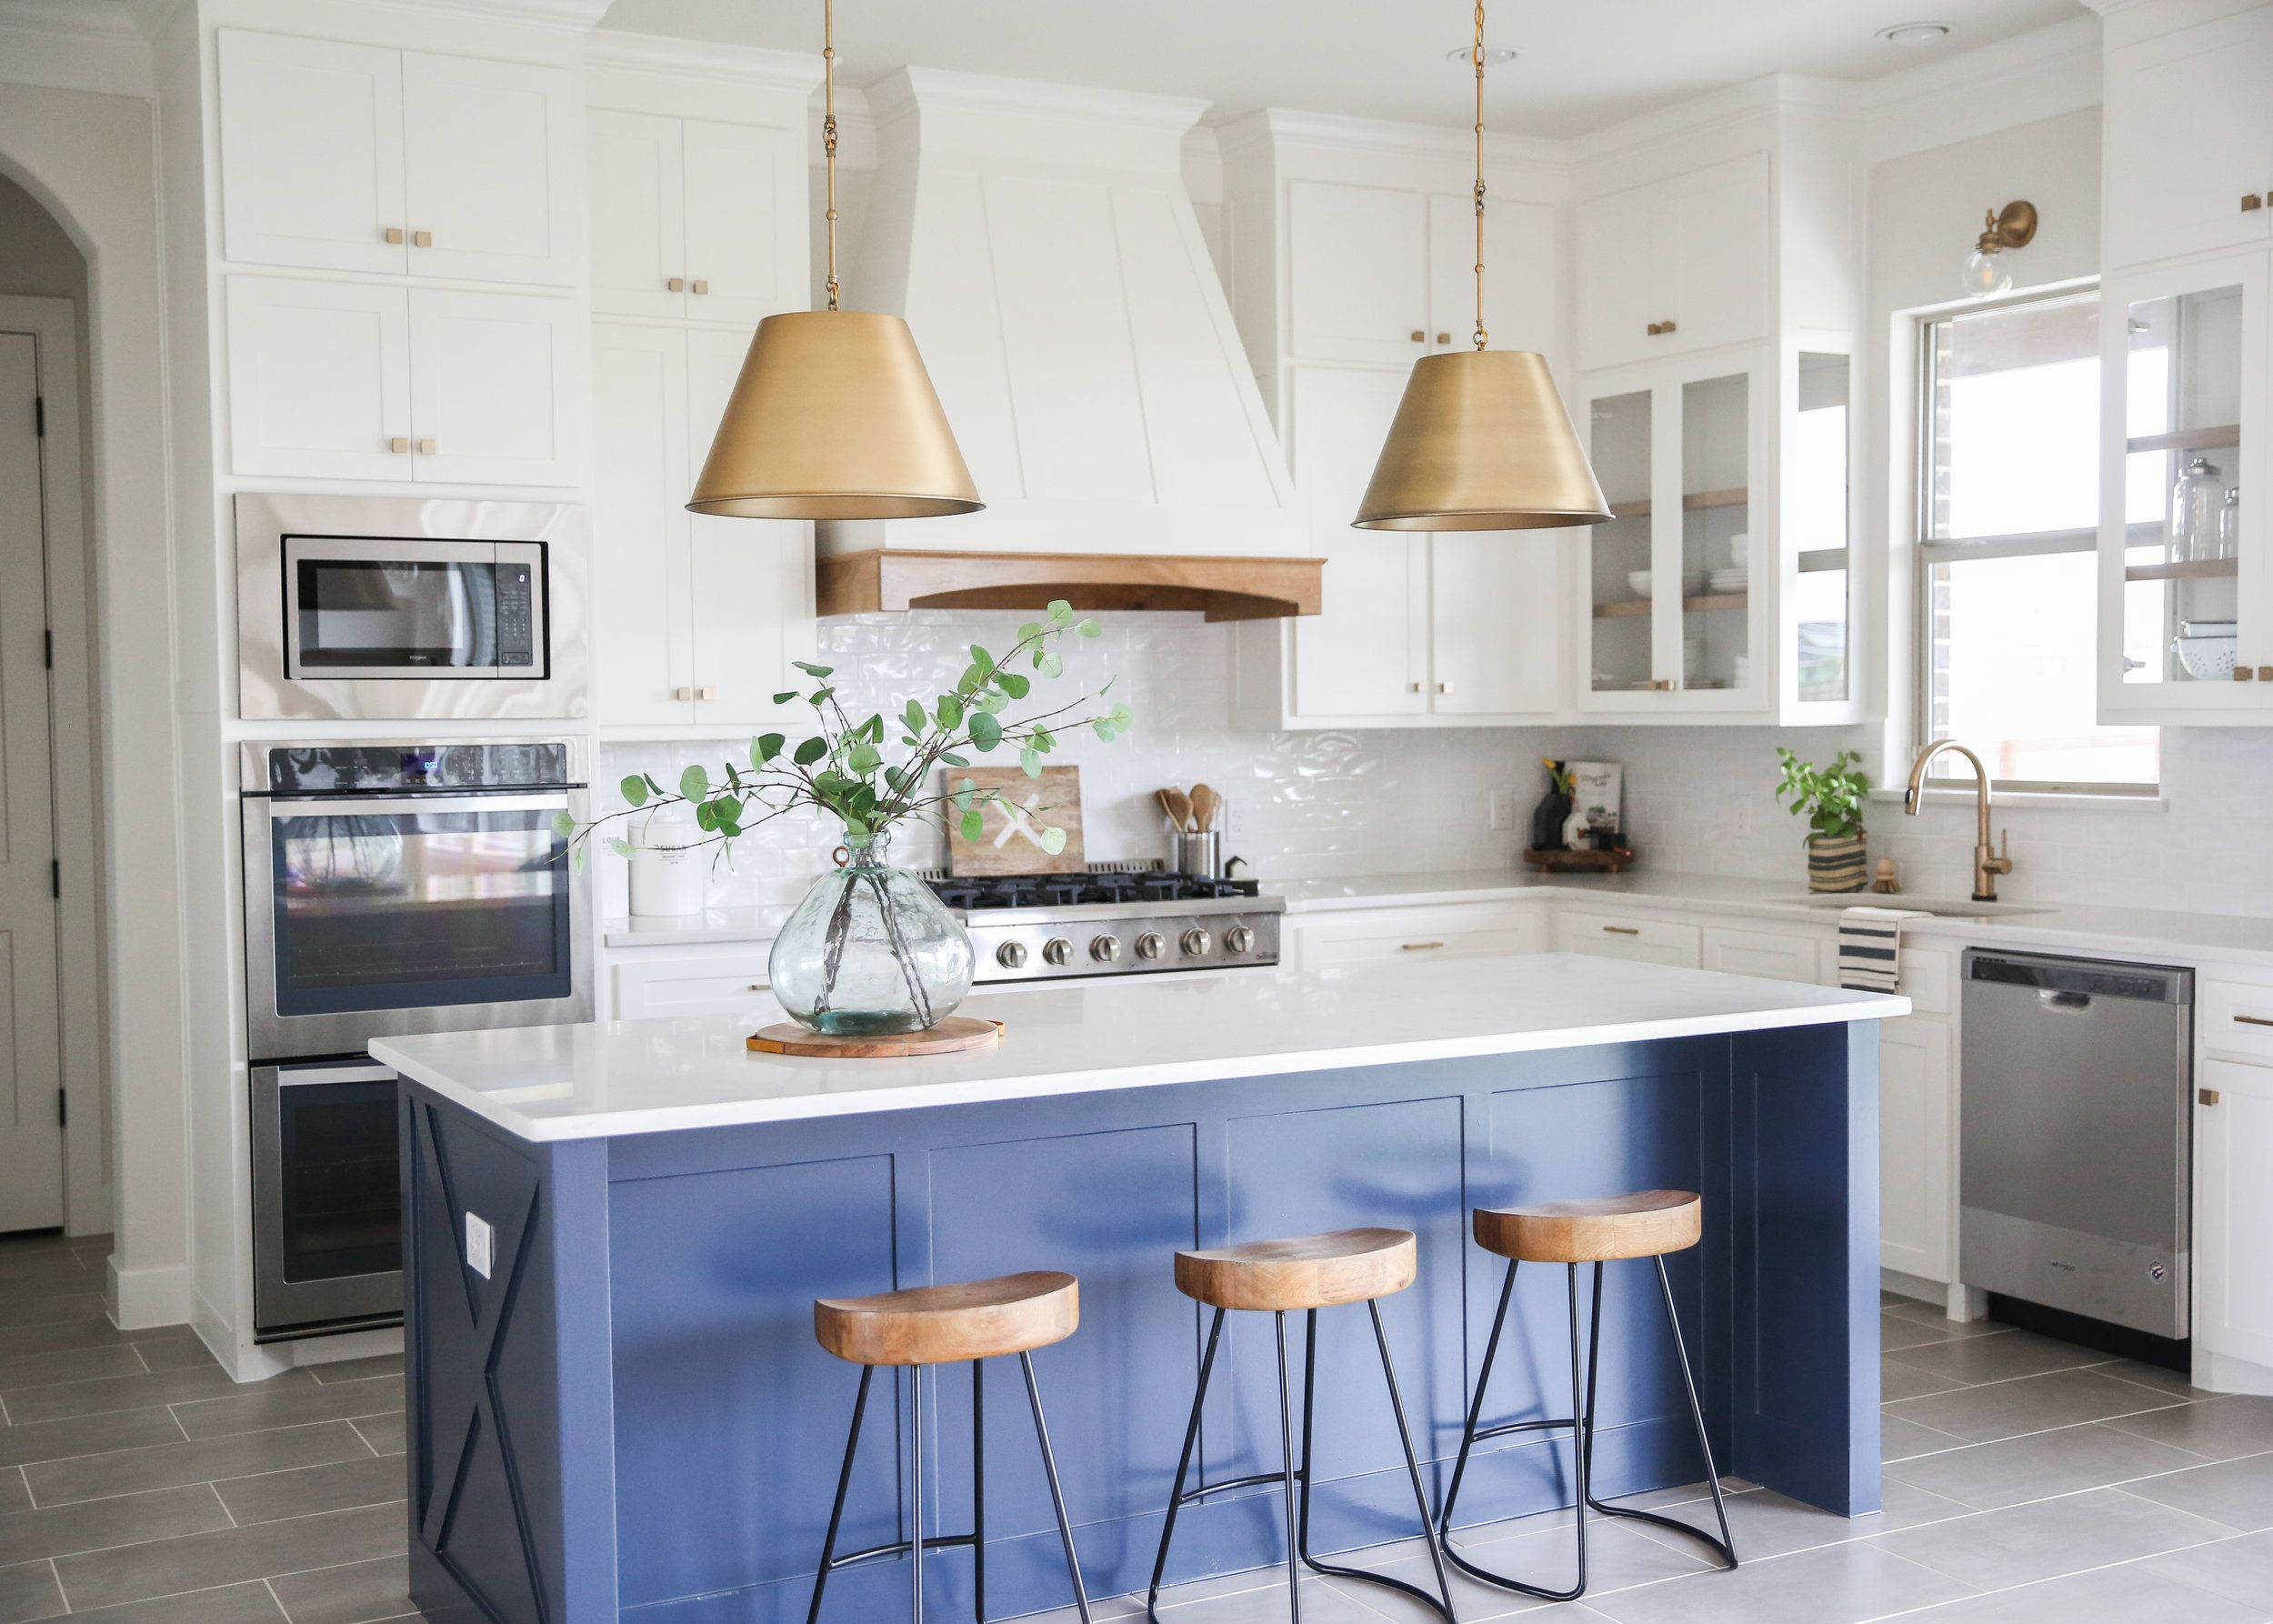 21 Blue and White Kitchens That Prove This Color Pairing Is Perfection